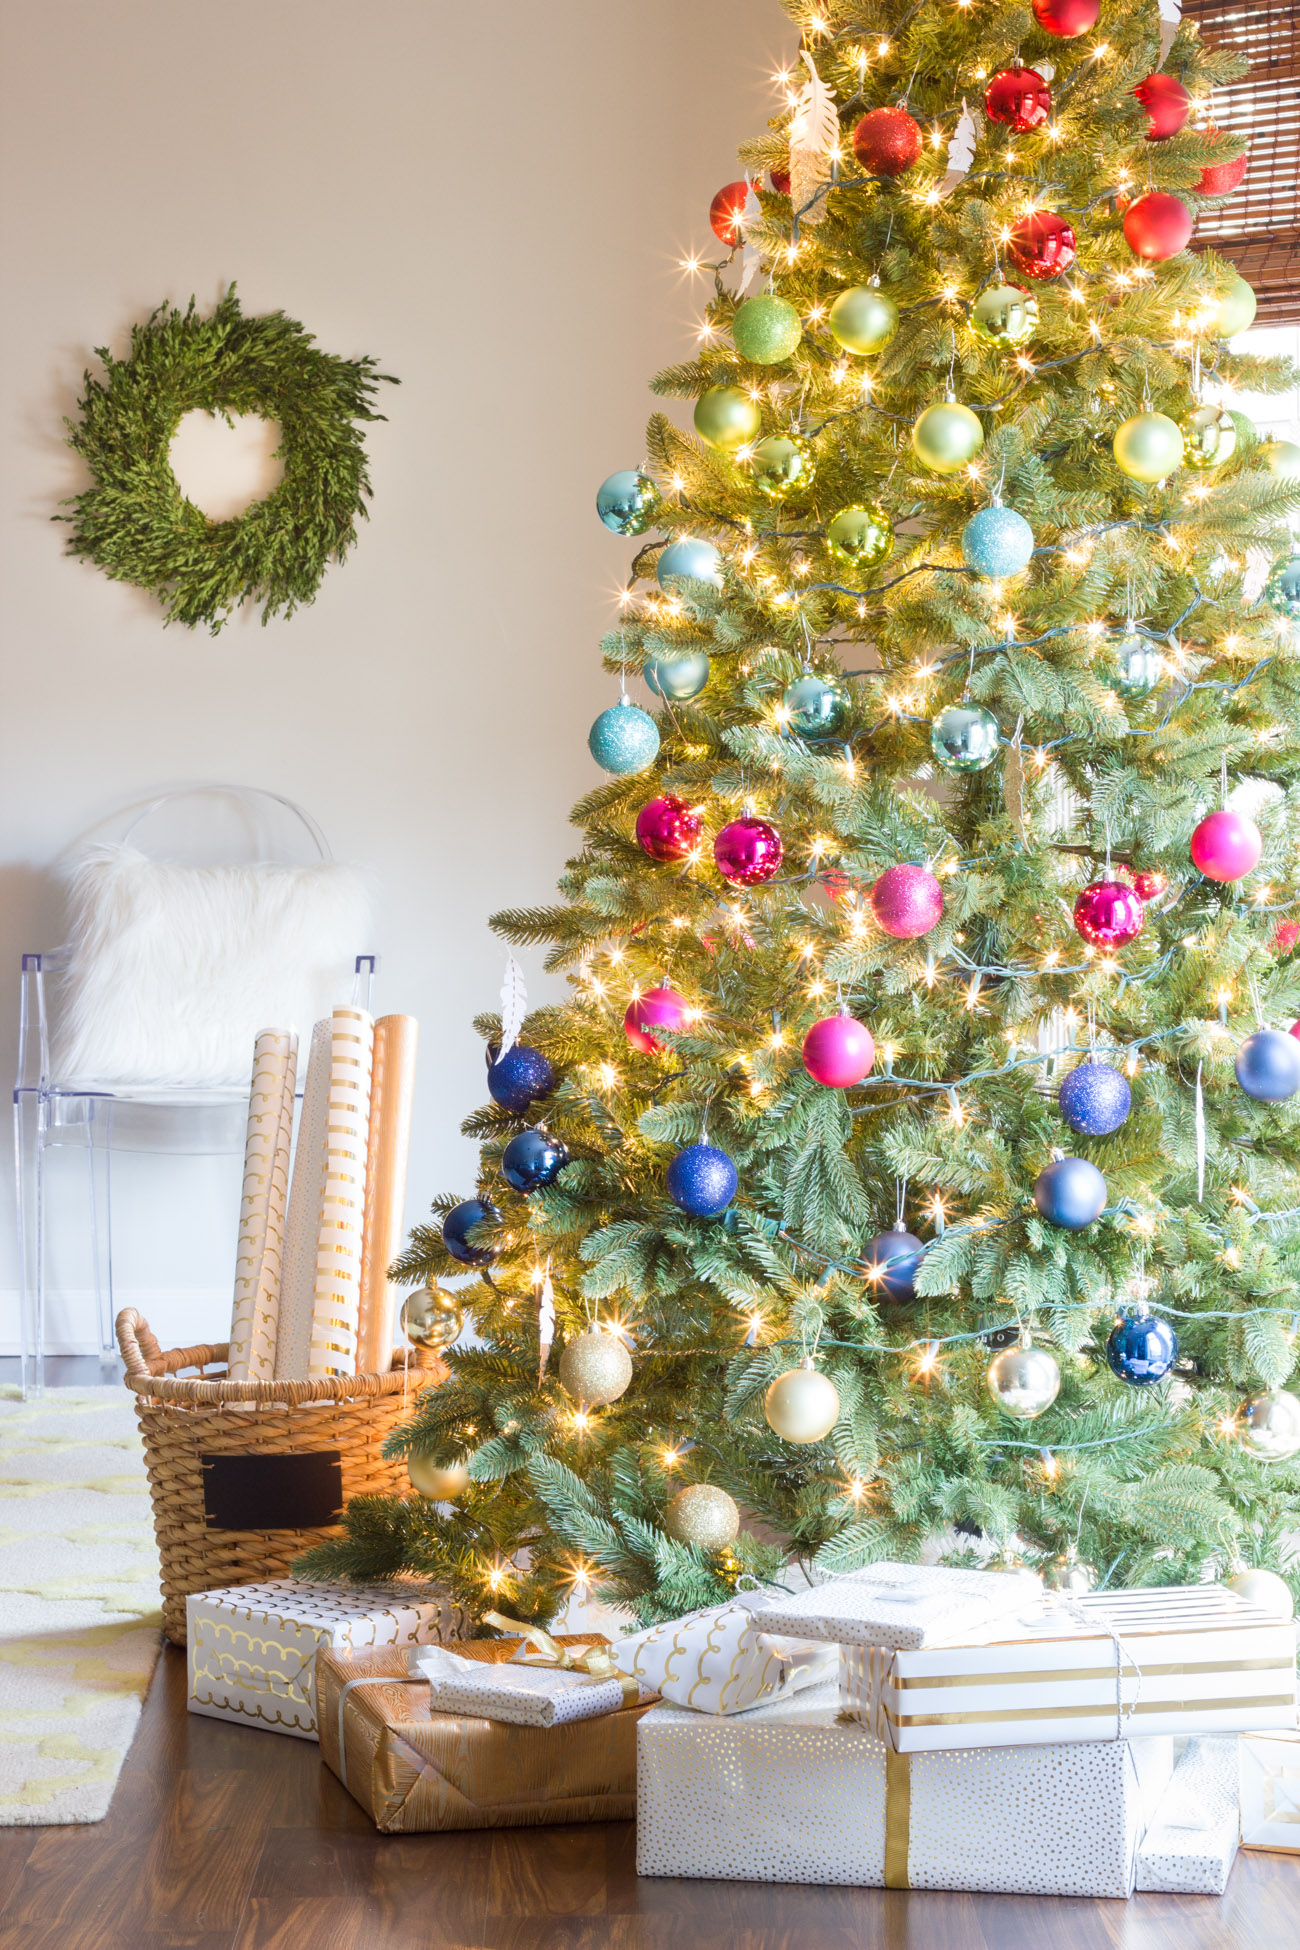 Holiday Home Tour {part 2}: Colorful Christmas Decorations  Erin Spain